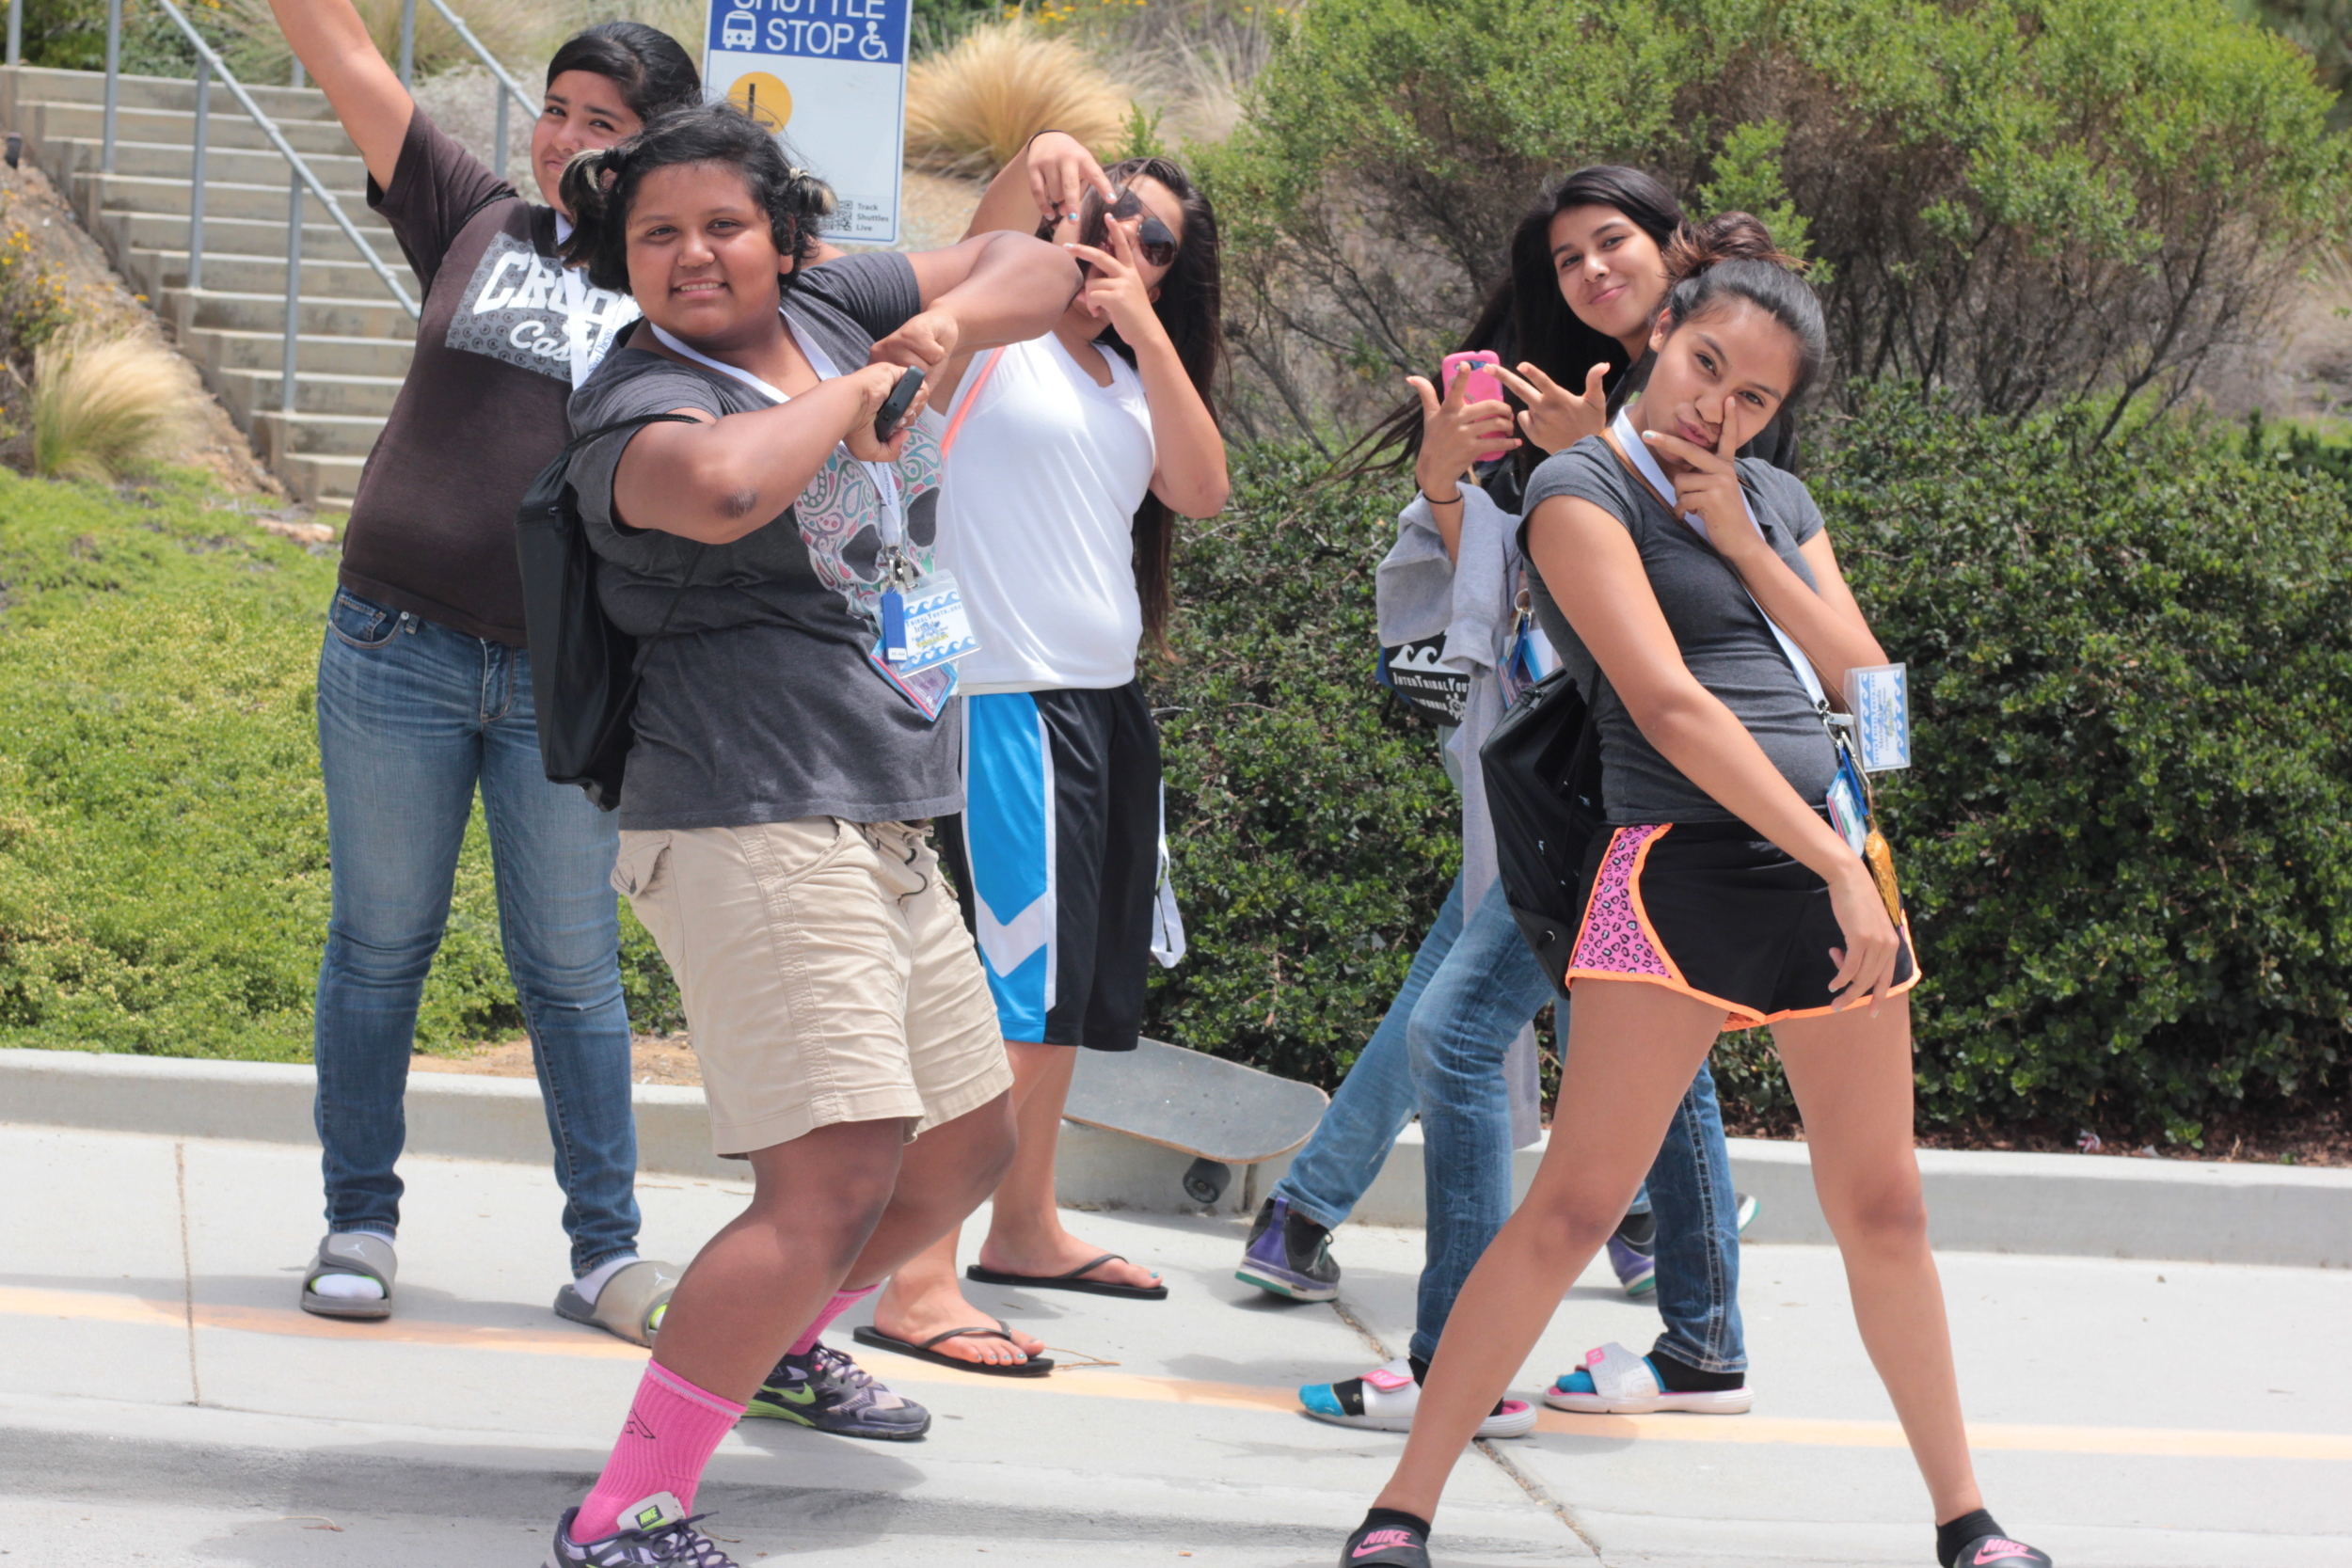 random acts of positive self-esteem. Youth enjoying the experience and the Ucsd campus.